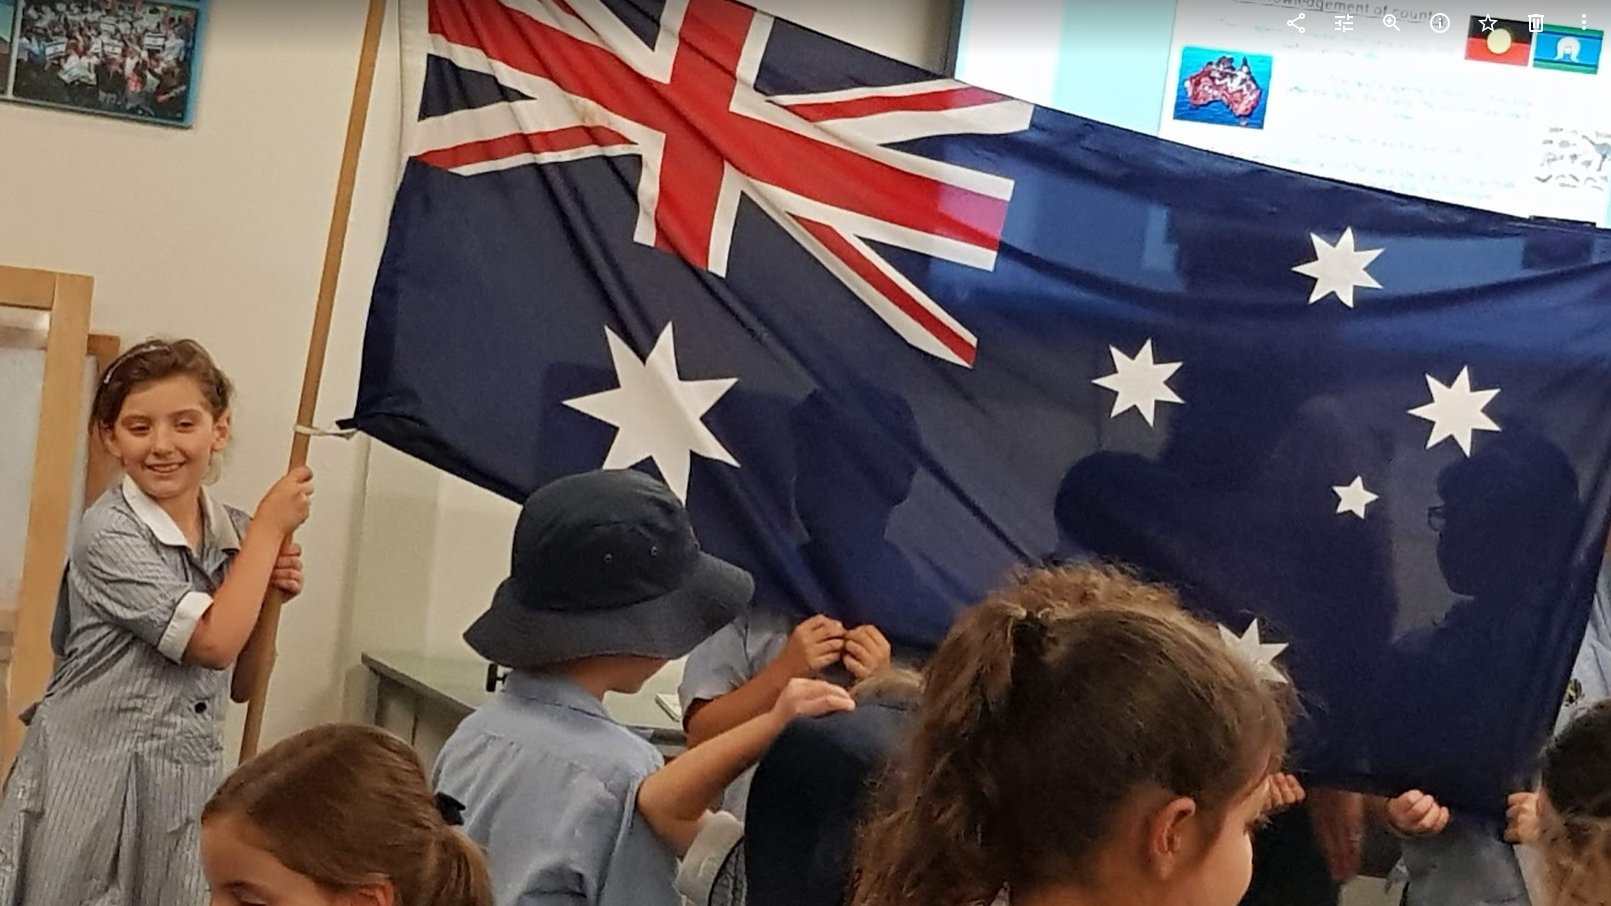 My daughter holding up the Australian